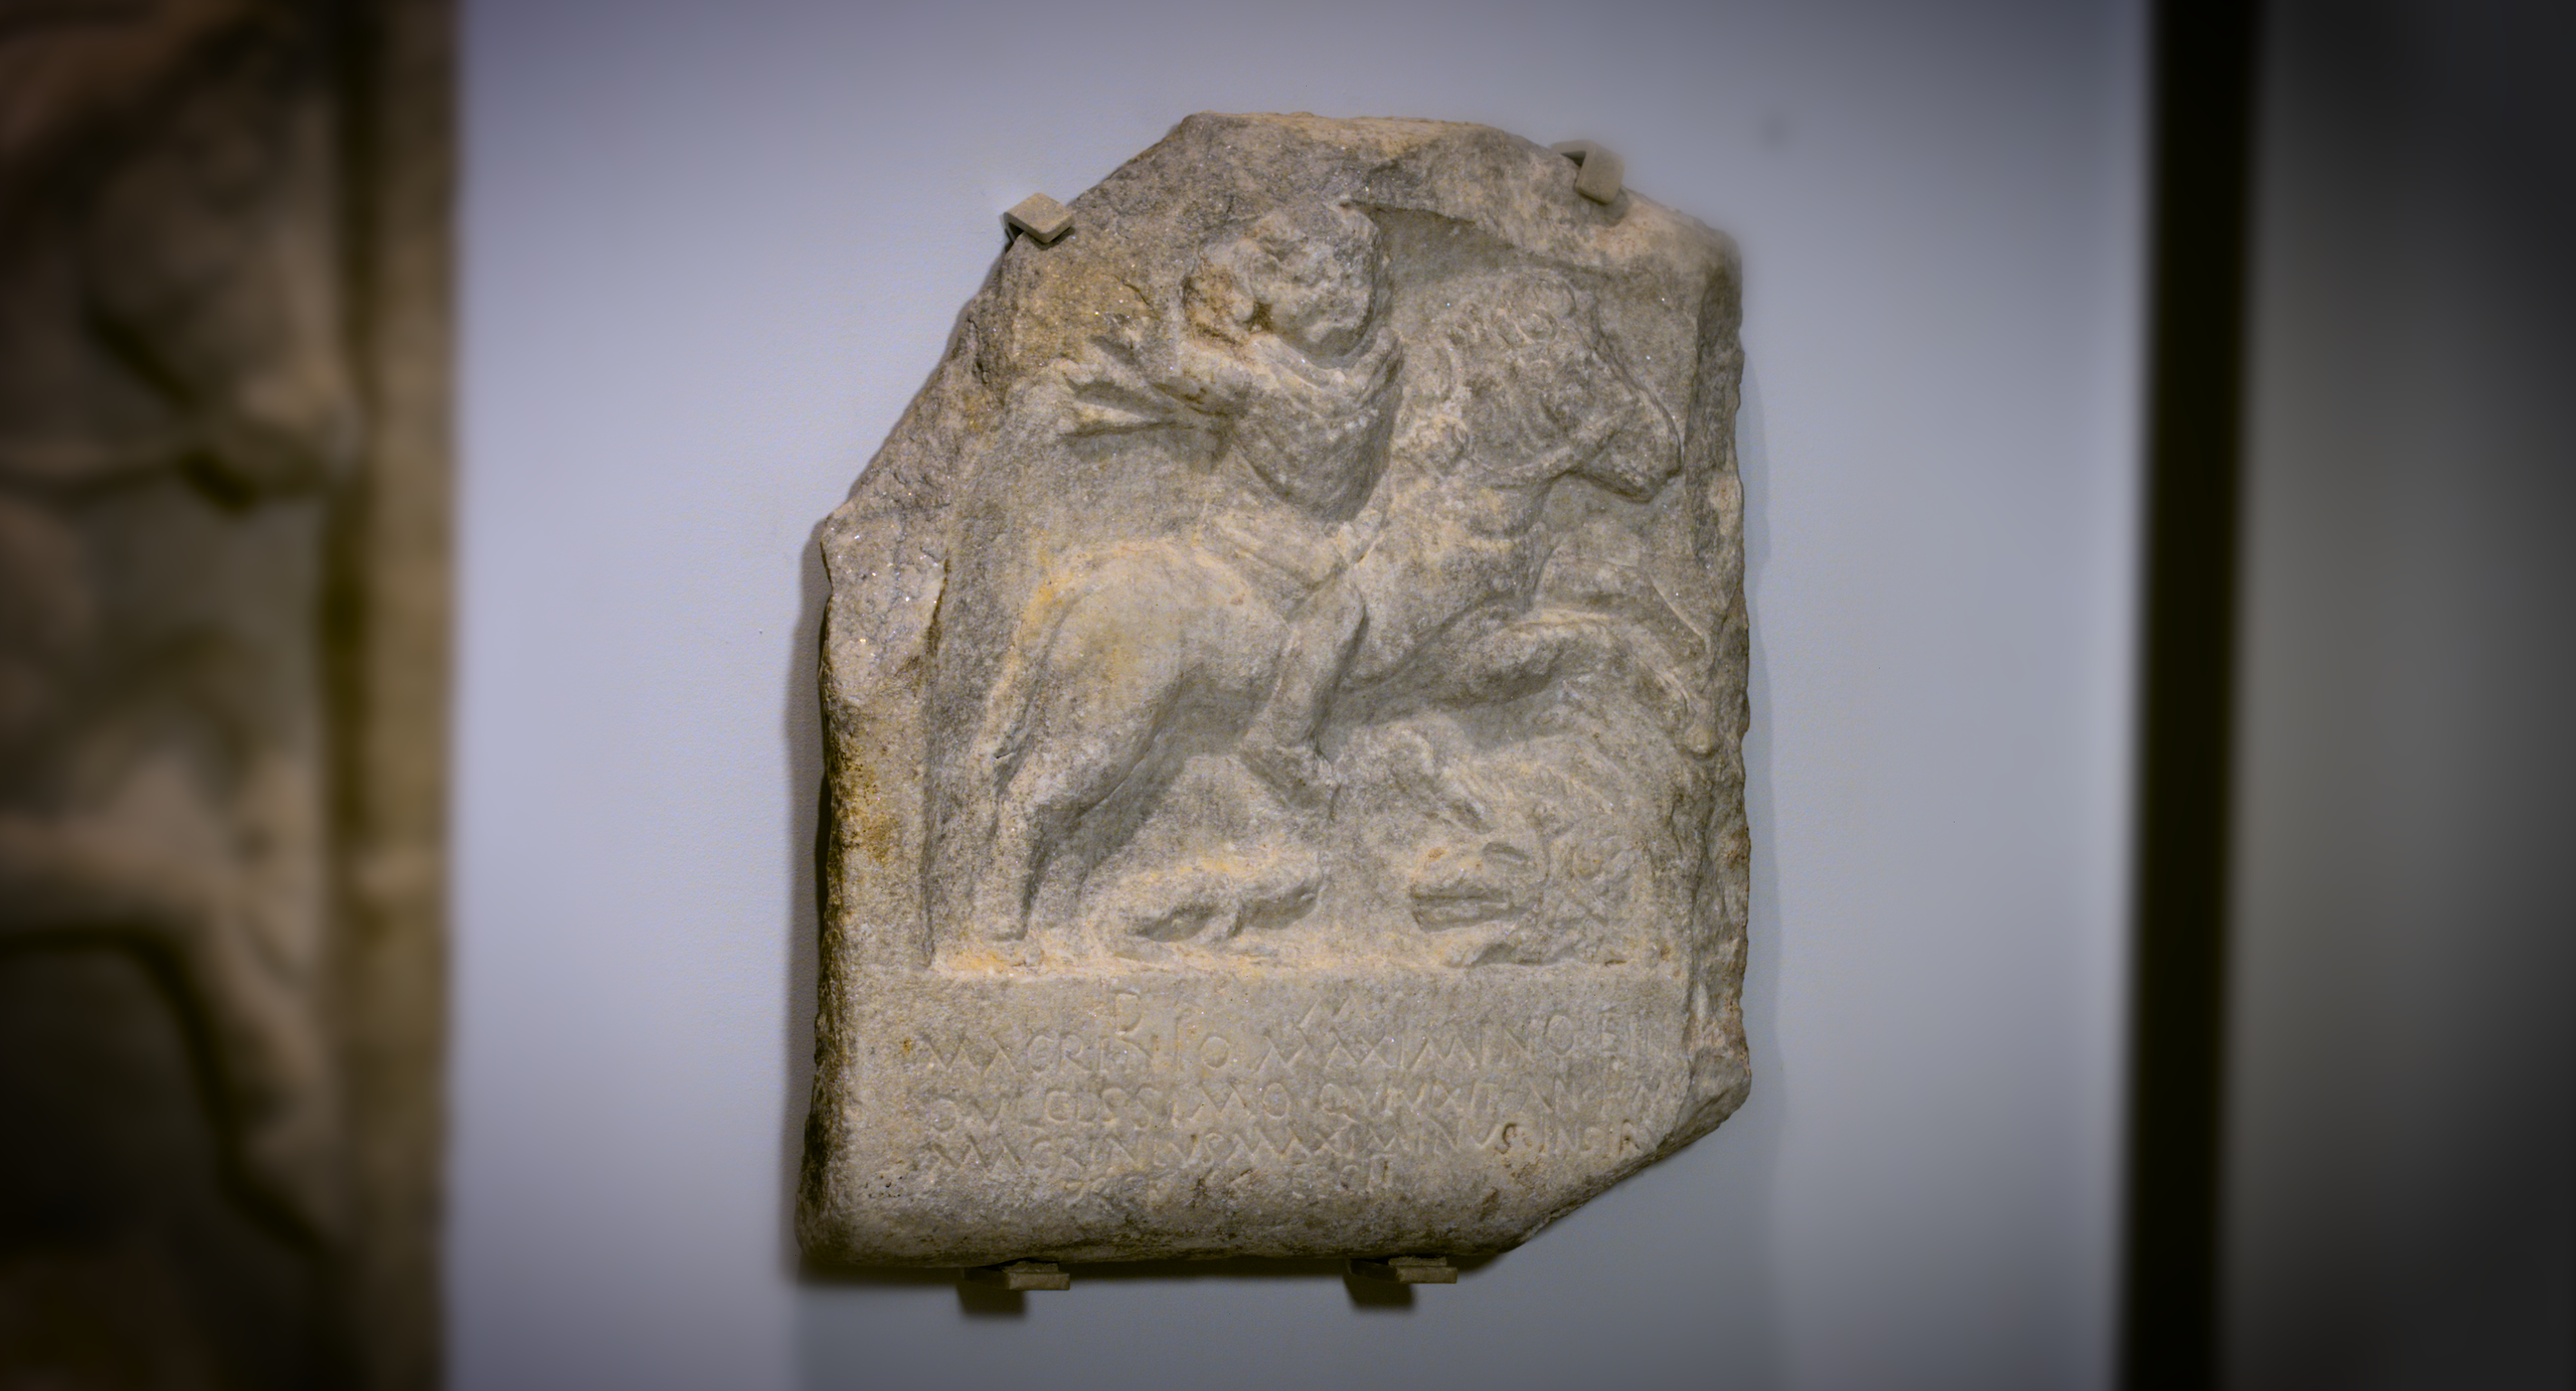 Marble slab with a carving of a figure on horseback and a Latin inscription